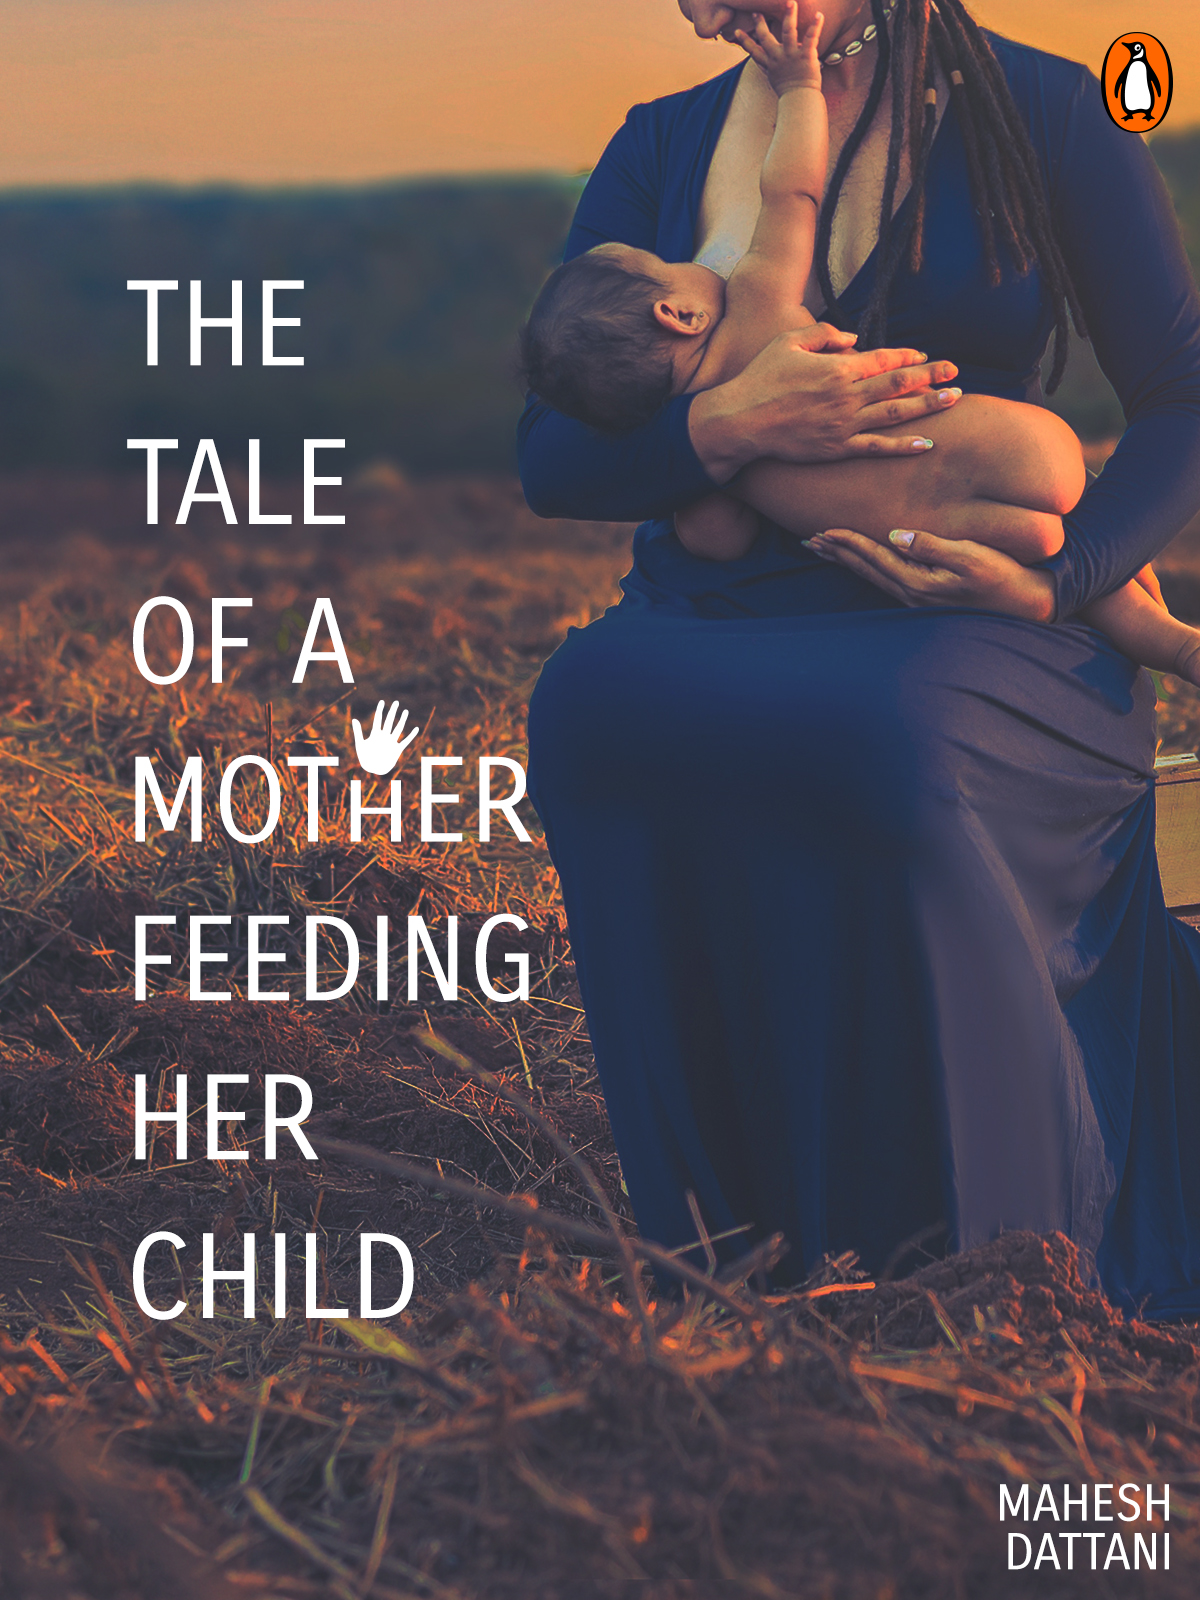 The Tale of a Mother feeding her Child